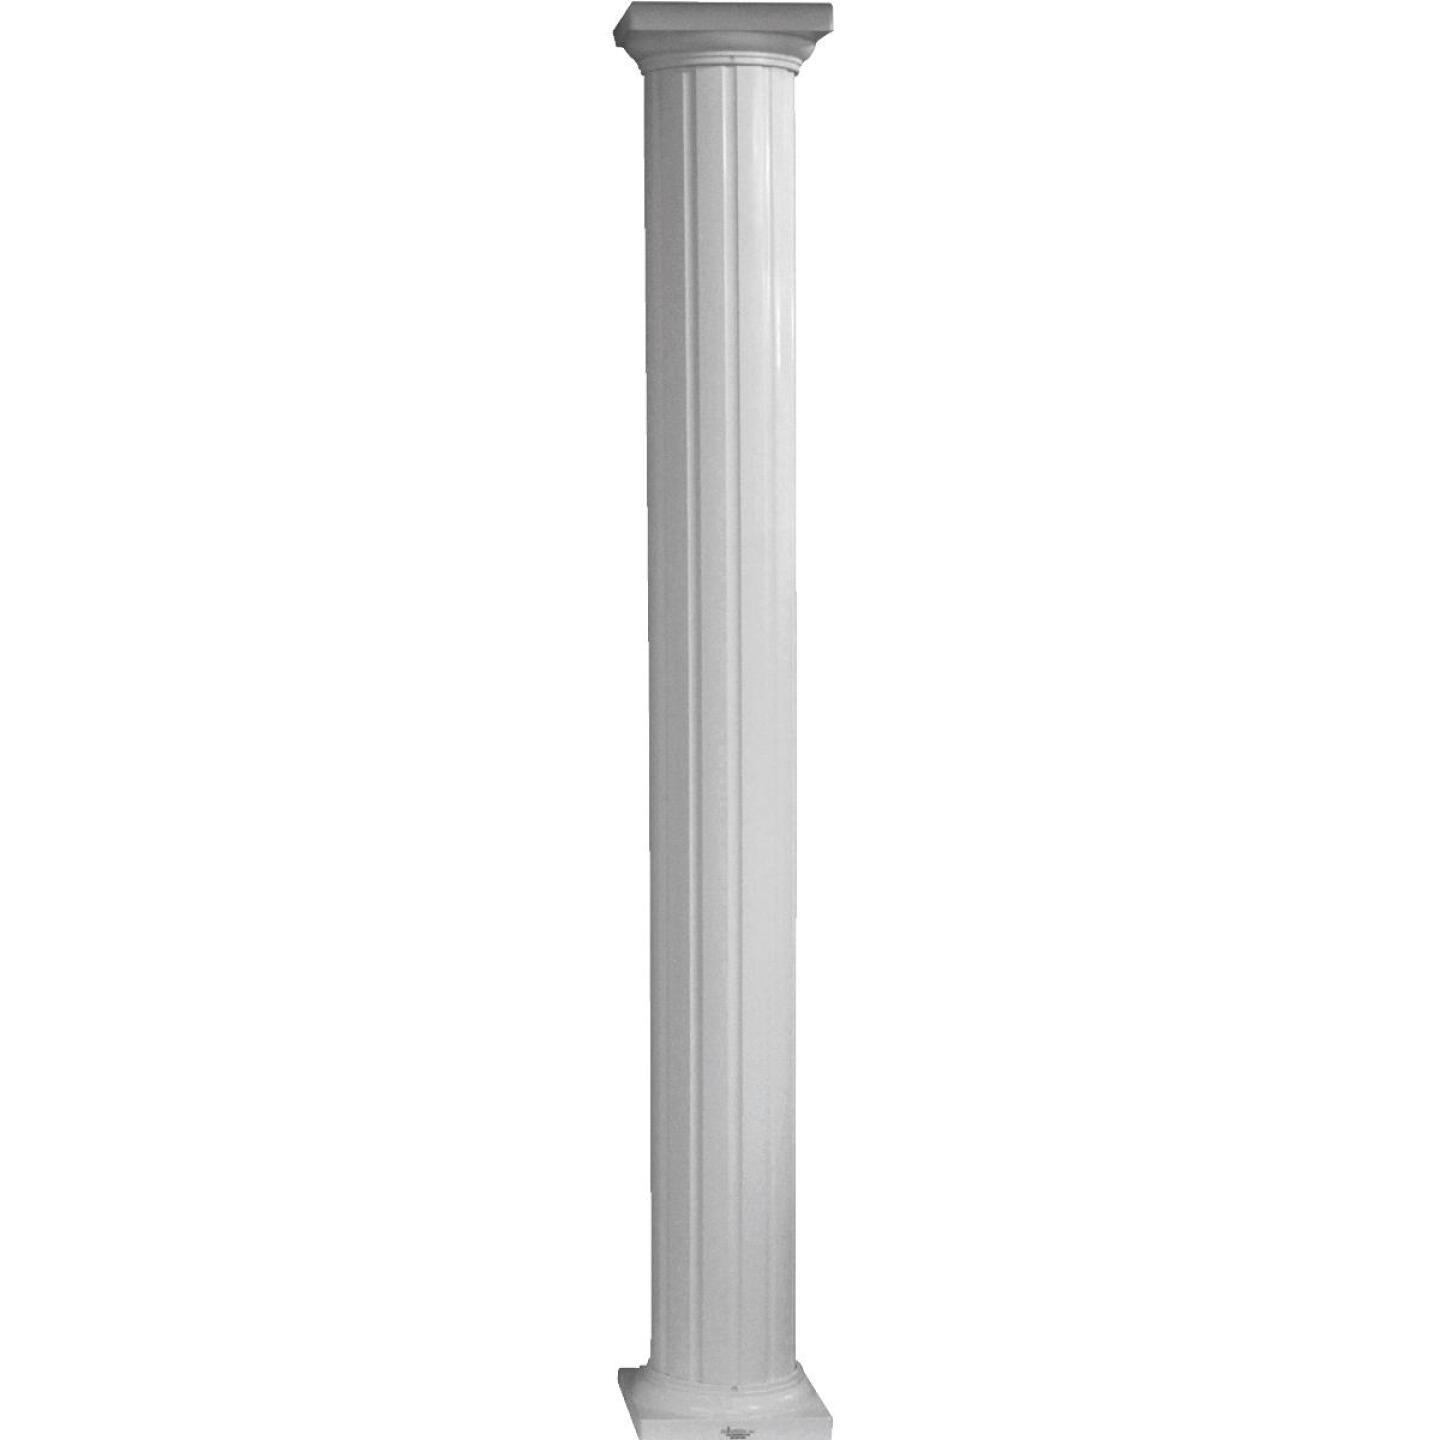 Crown Column 6 In. x 8 Ft. White Powder Coated Round Fluted Aluminum Column Image 1